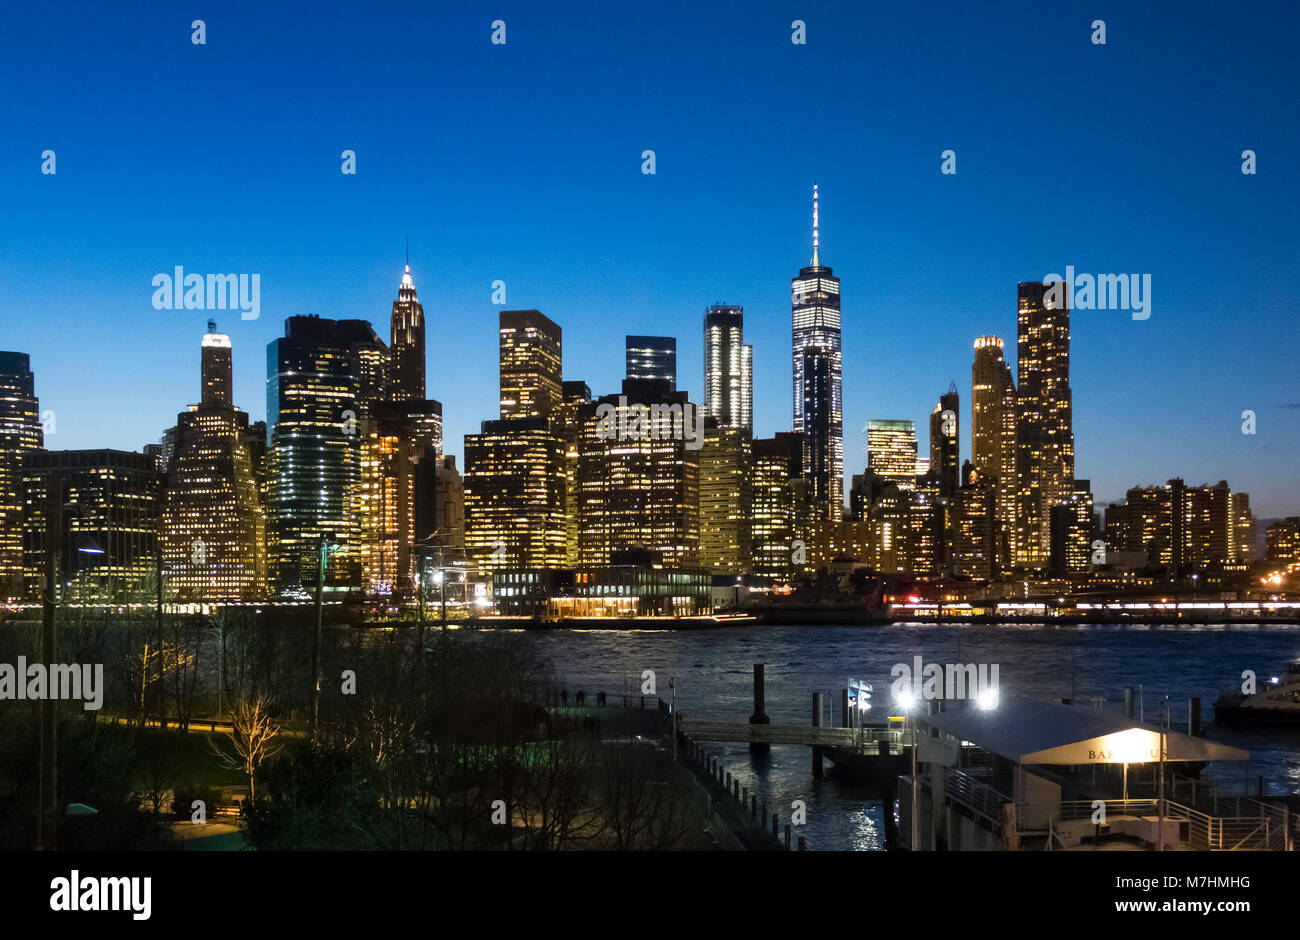 The Lower Manhattan skyline as seen from Dumbo, Brooklyn at night - Stock Image